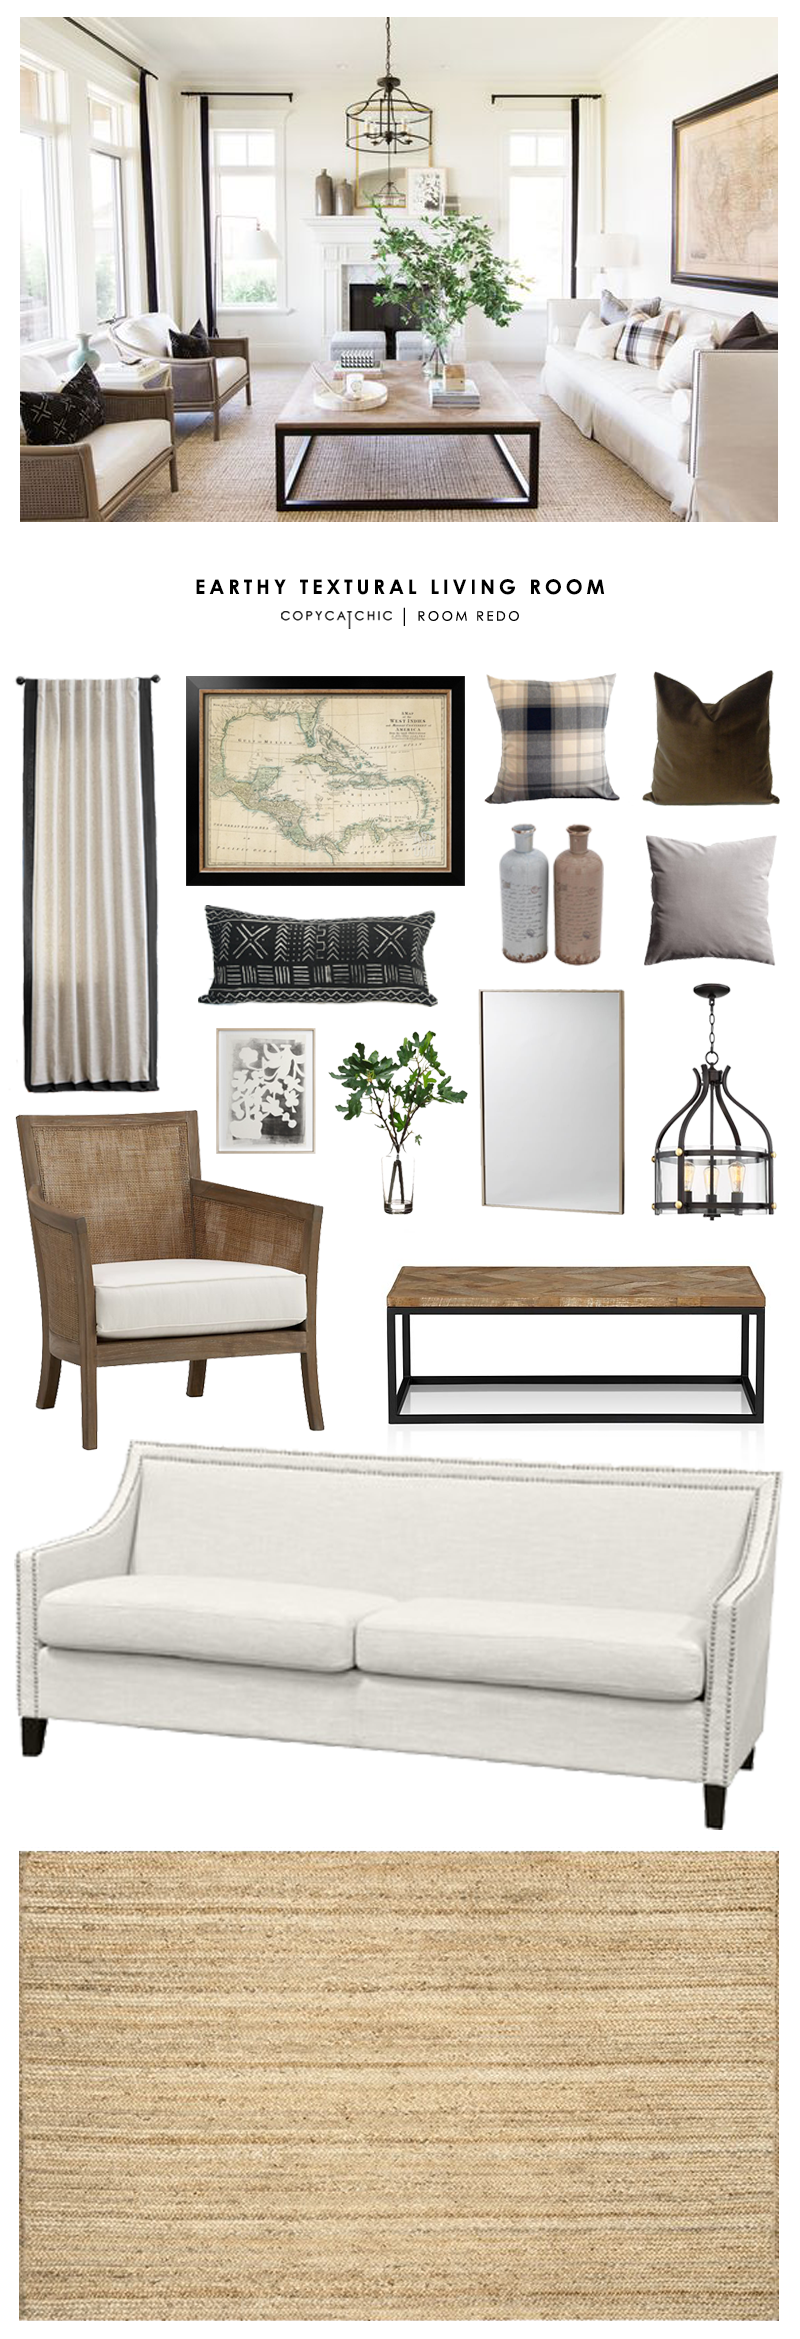 Copy cat chic room redo earthy textural living room for Kitty corner bed ideas